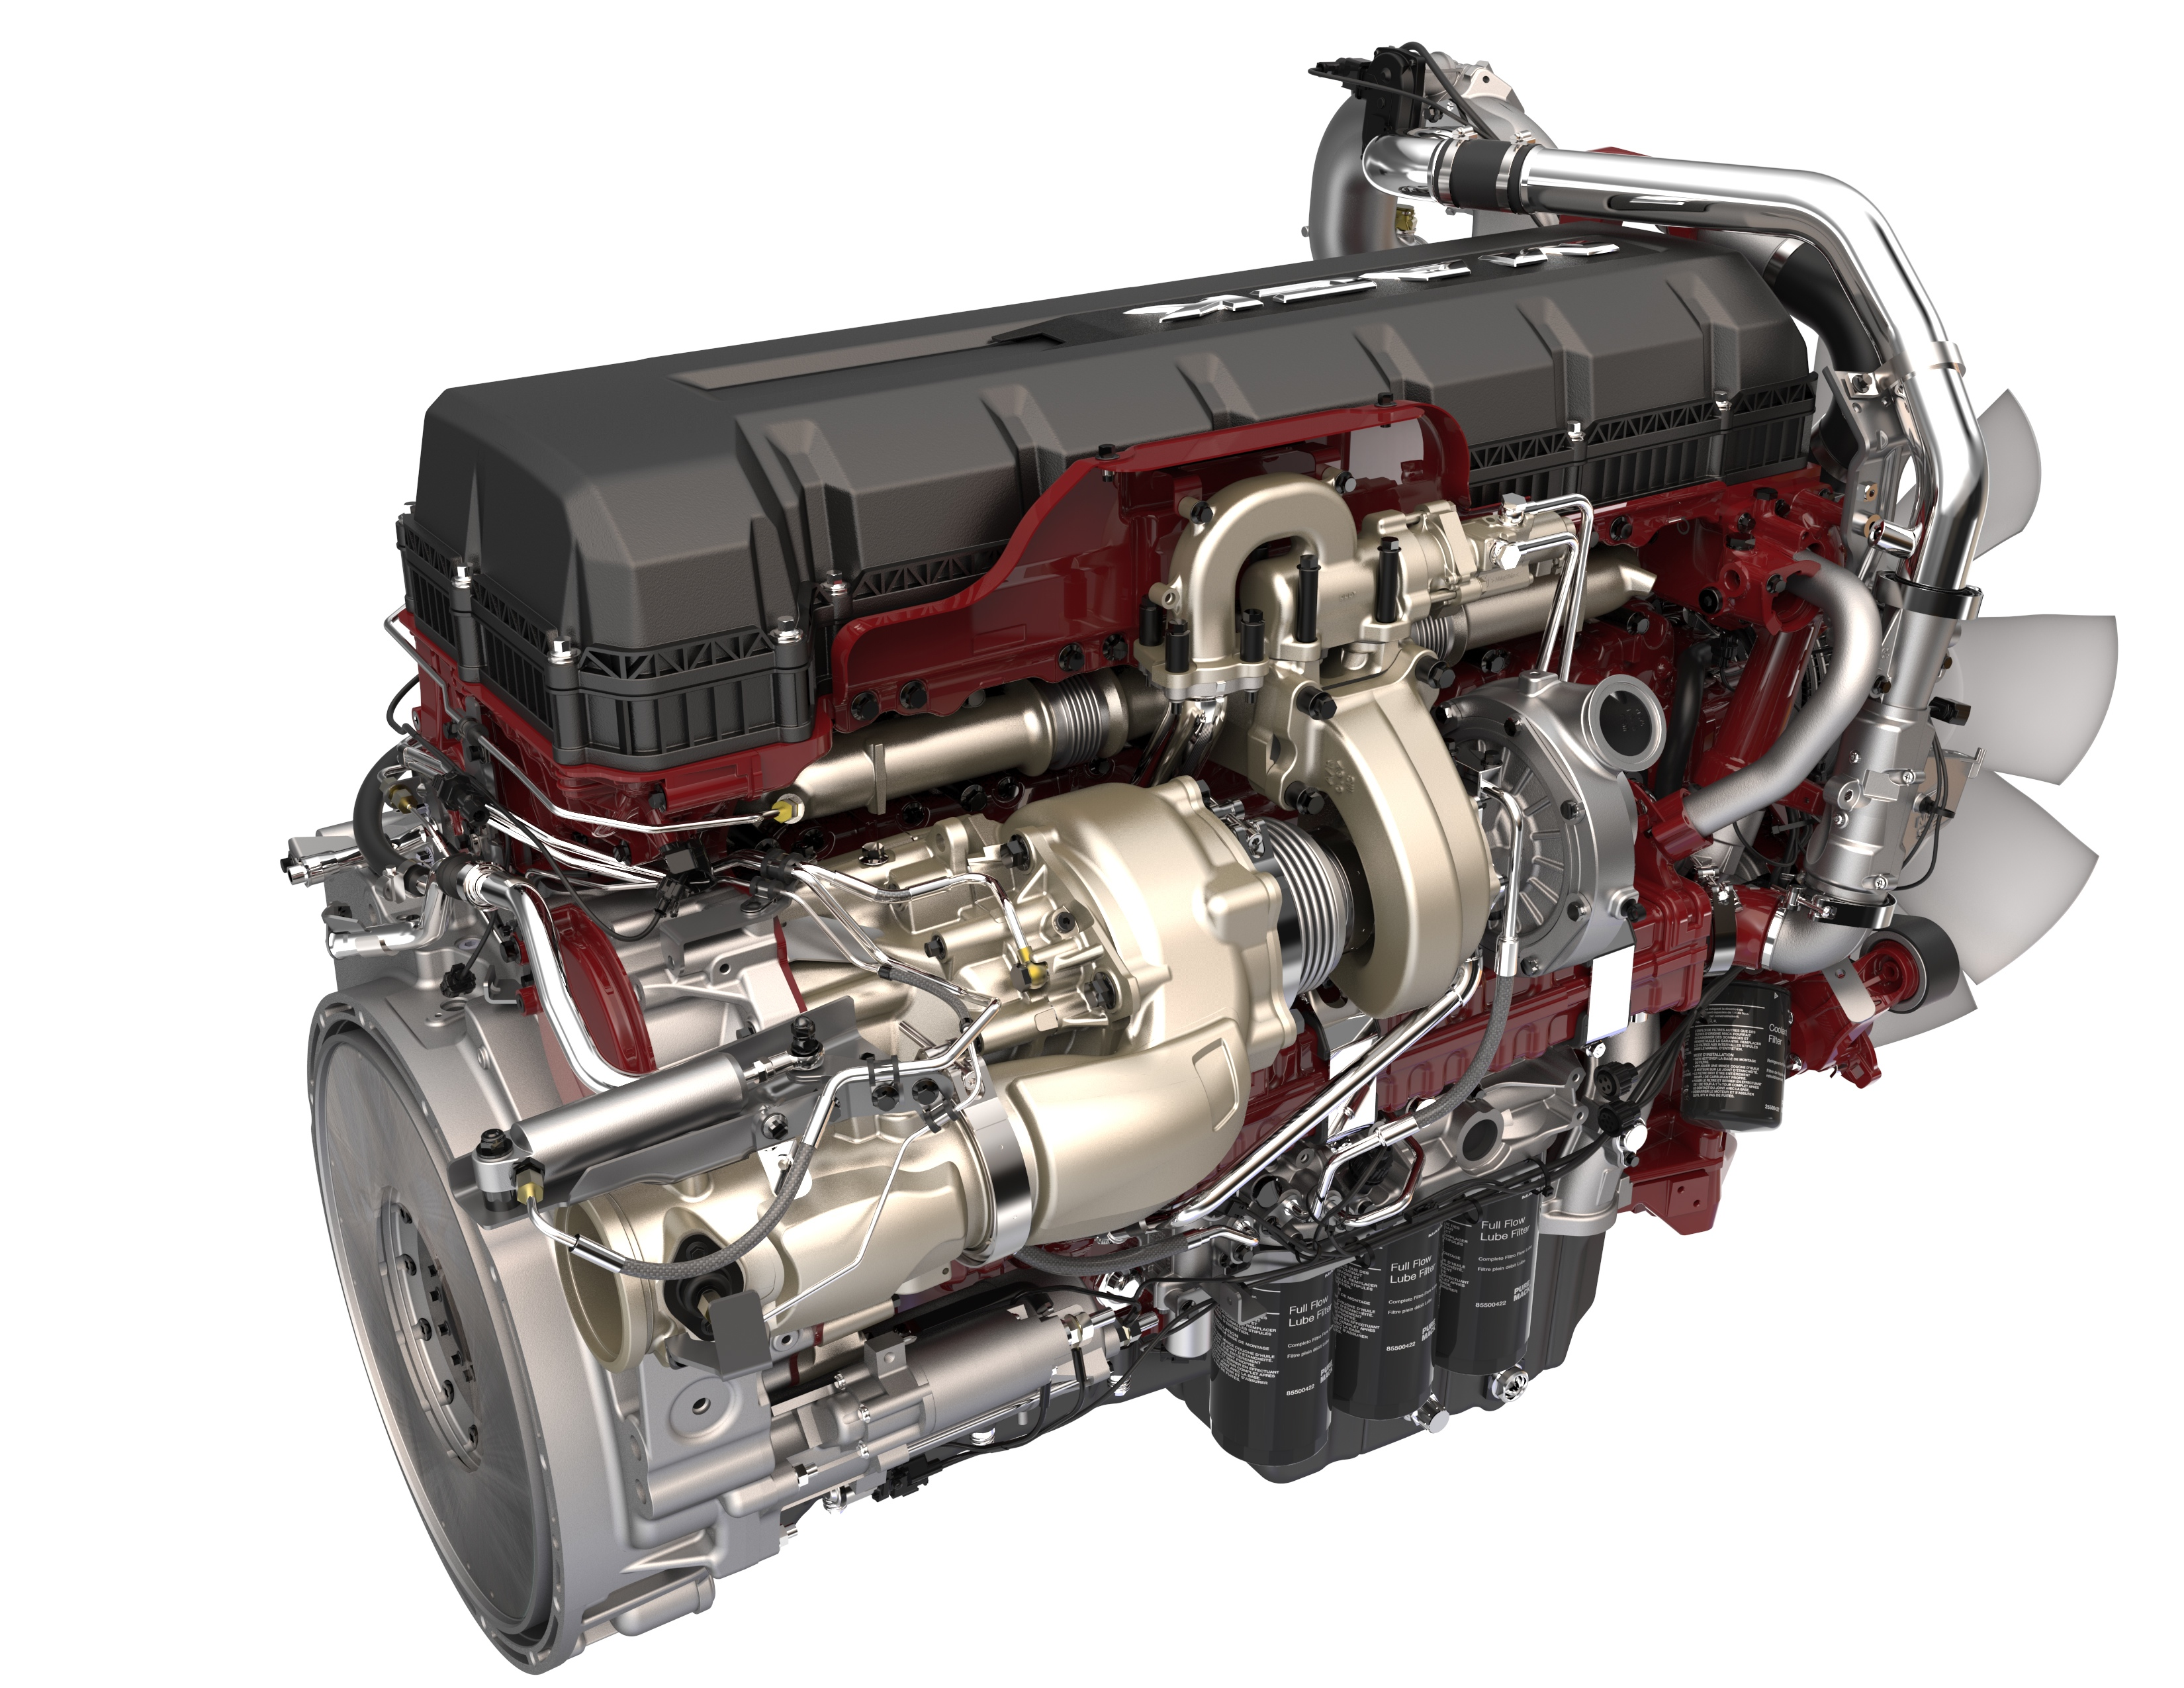 Mack To Improve Fuel Economy In 2017 Engines  Adds